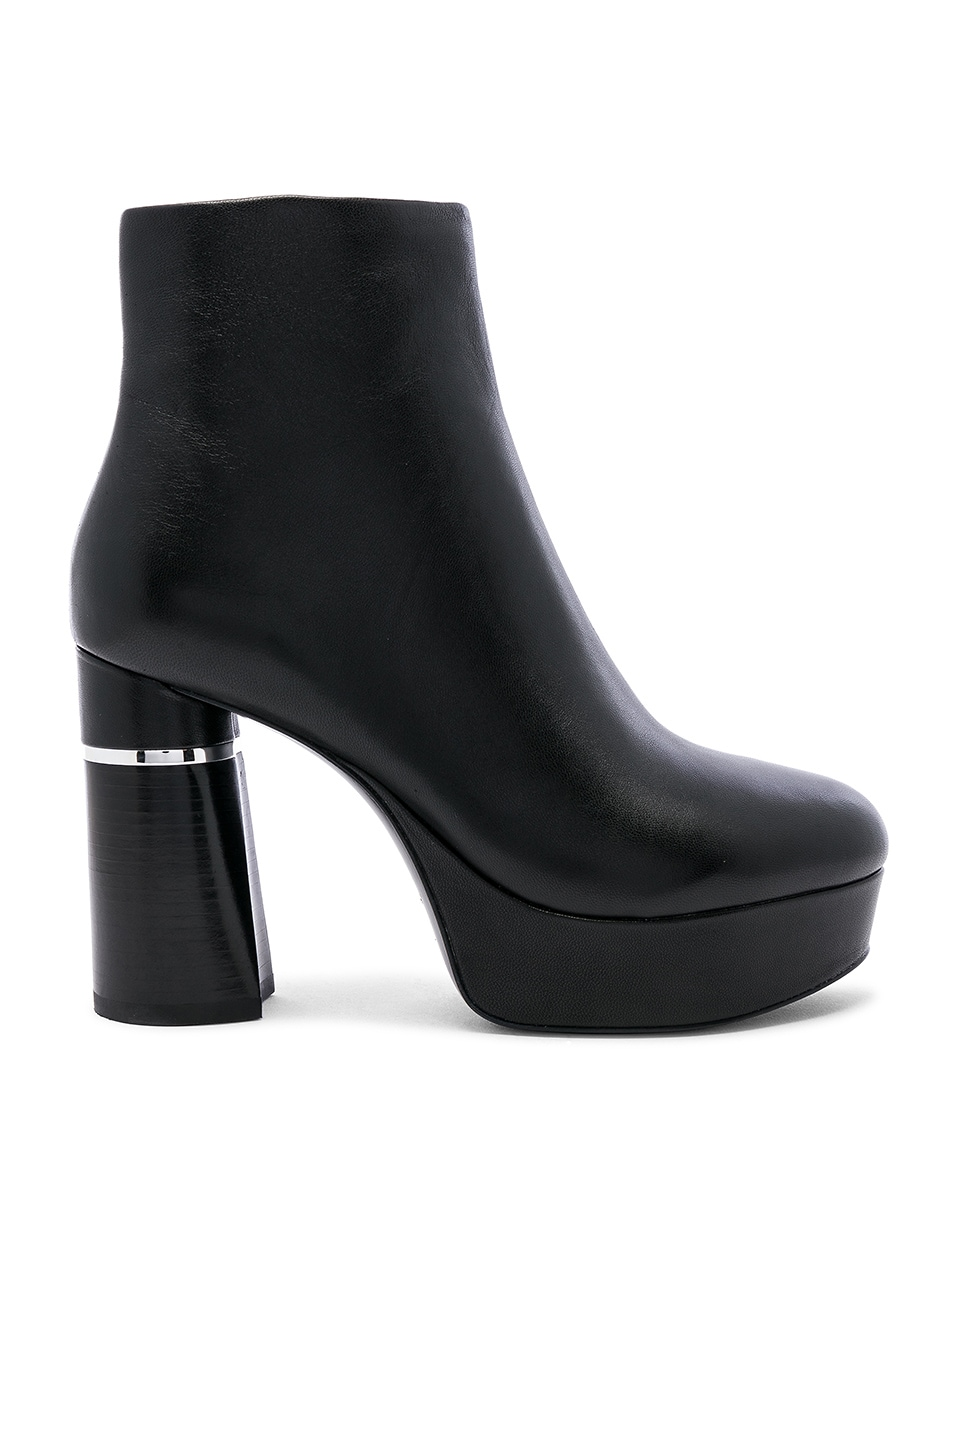 3.1 phillip lim Ziggy Platform Boot in Black